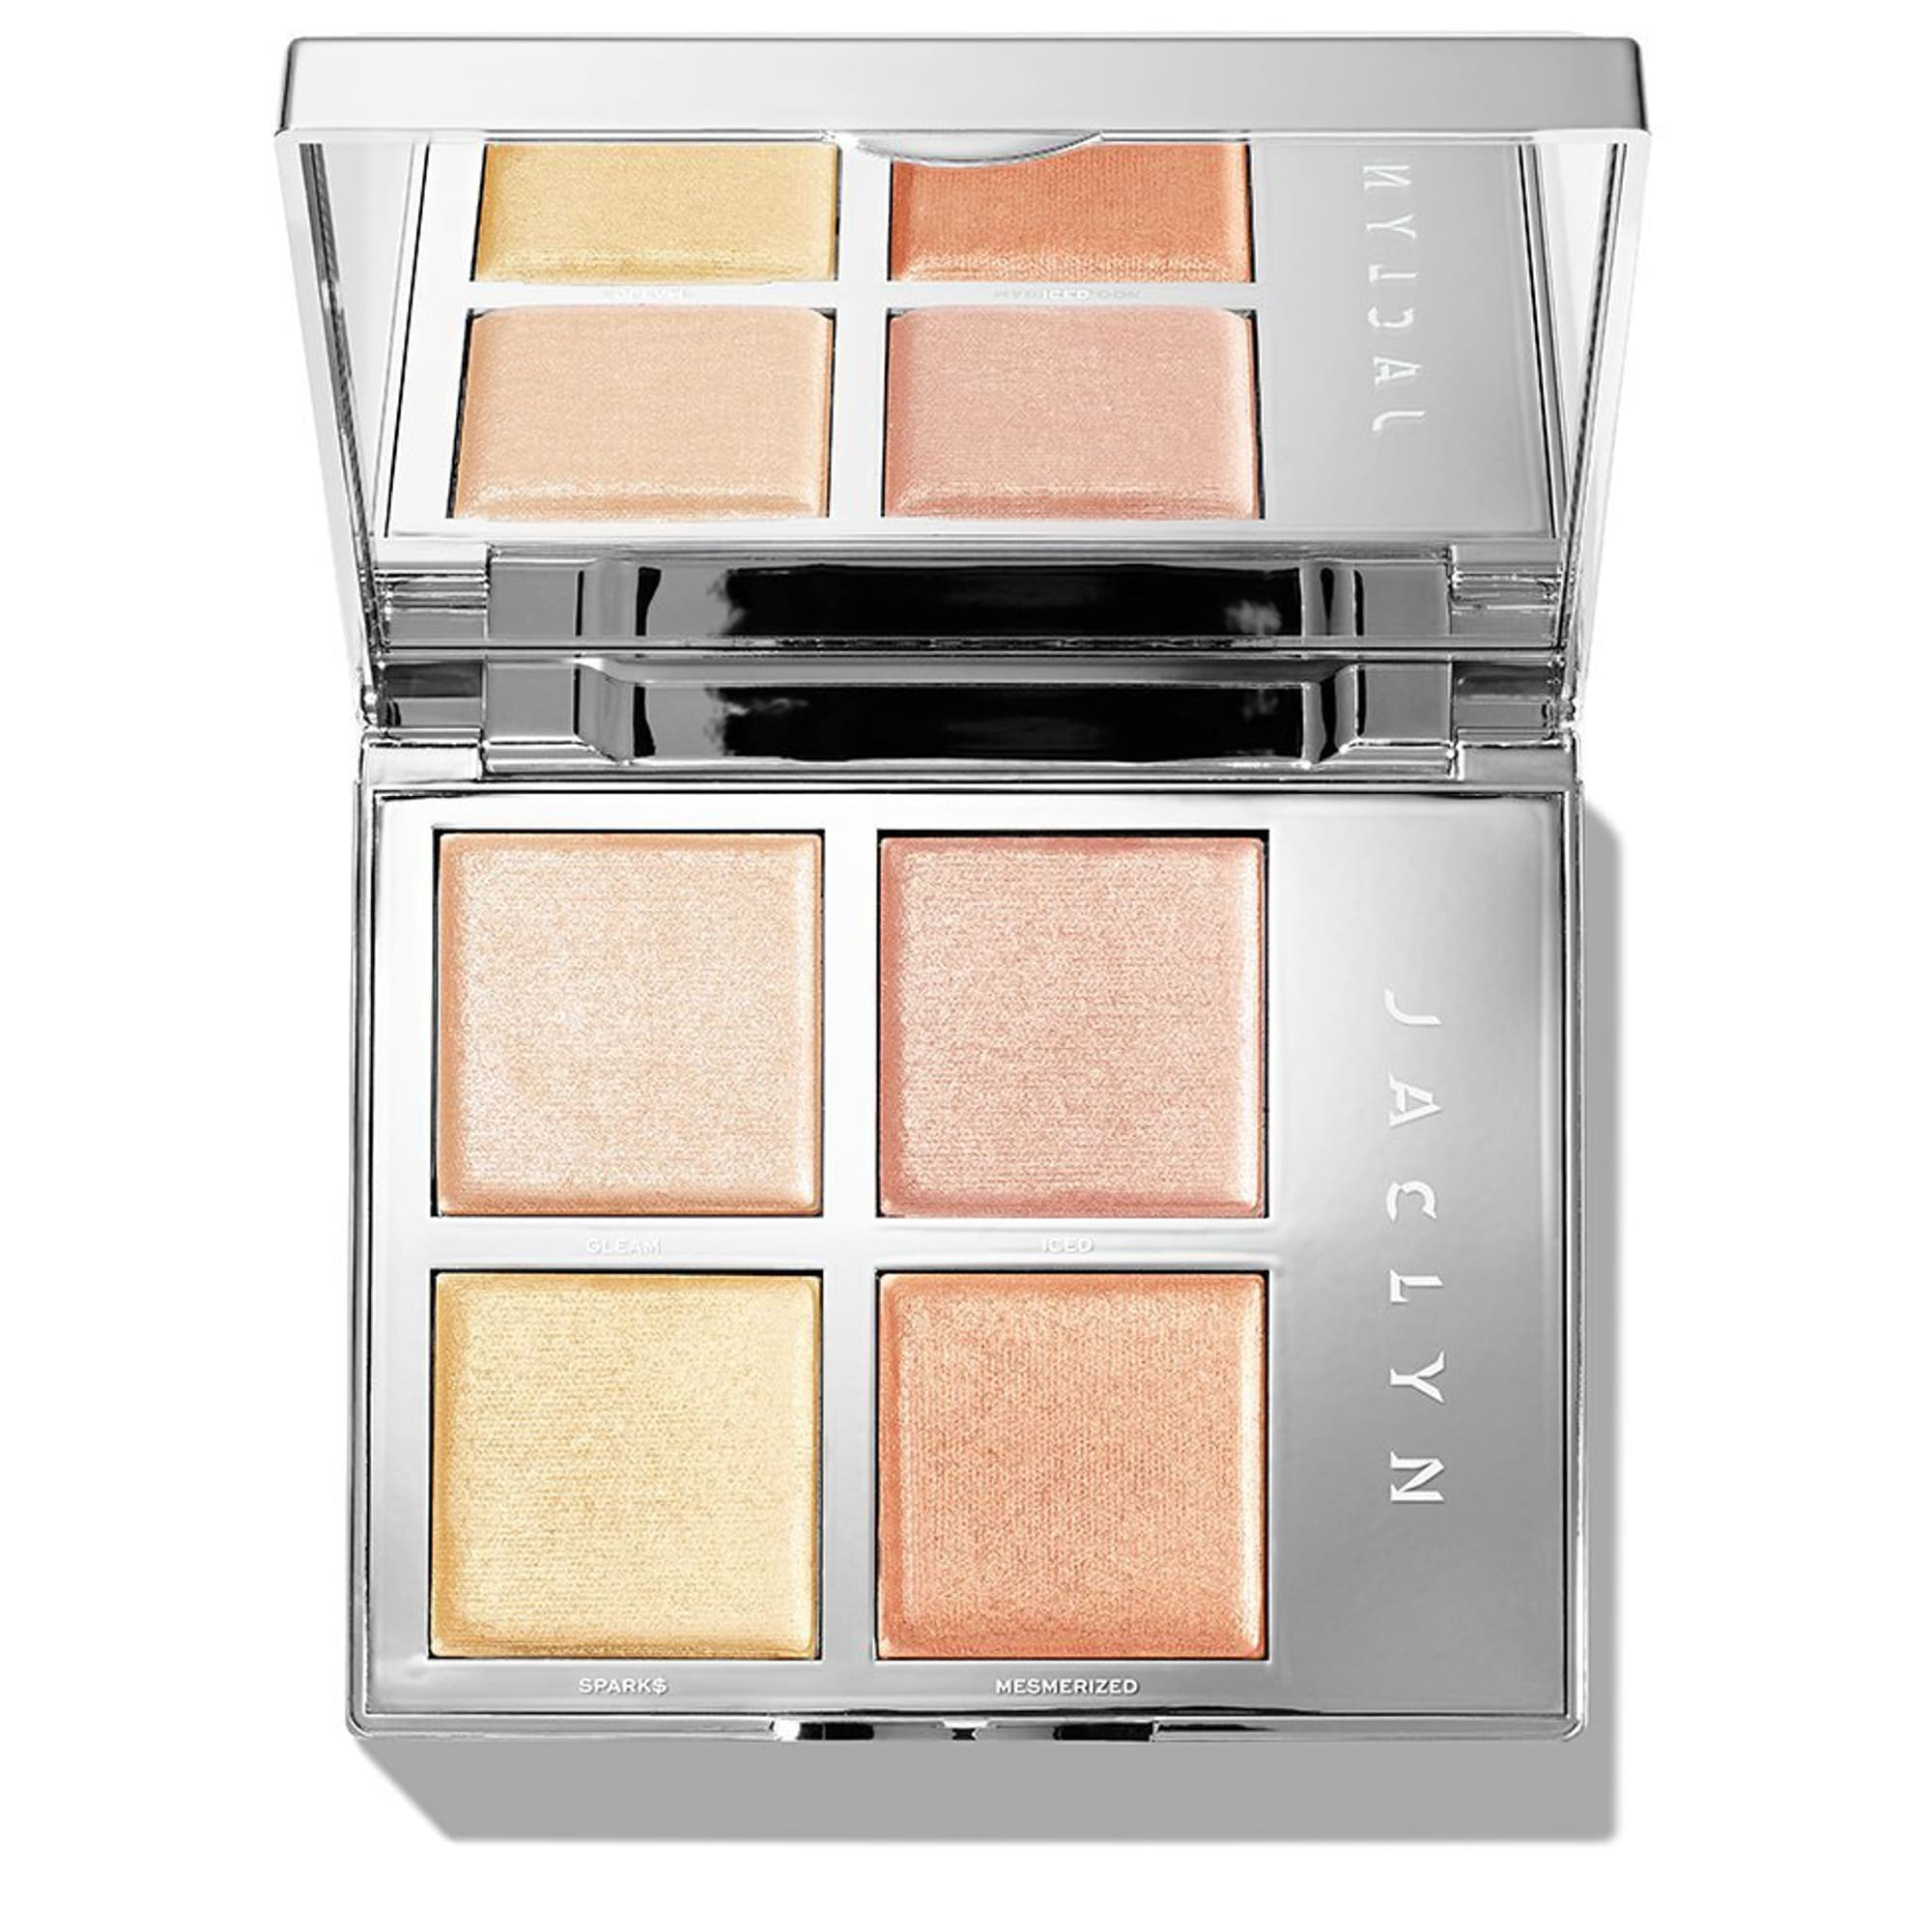 Jaclyn Cosmetics Accent Light Highlighter Palette The Flash